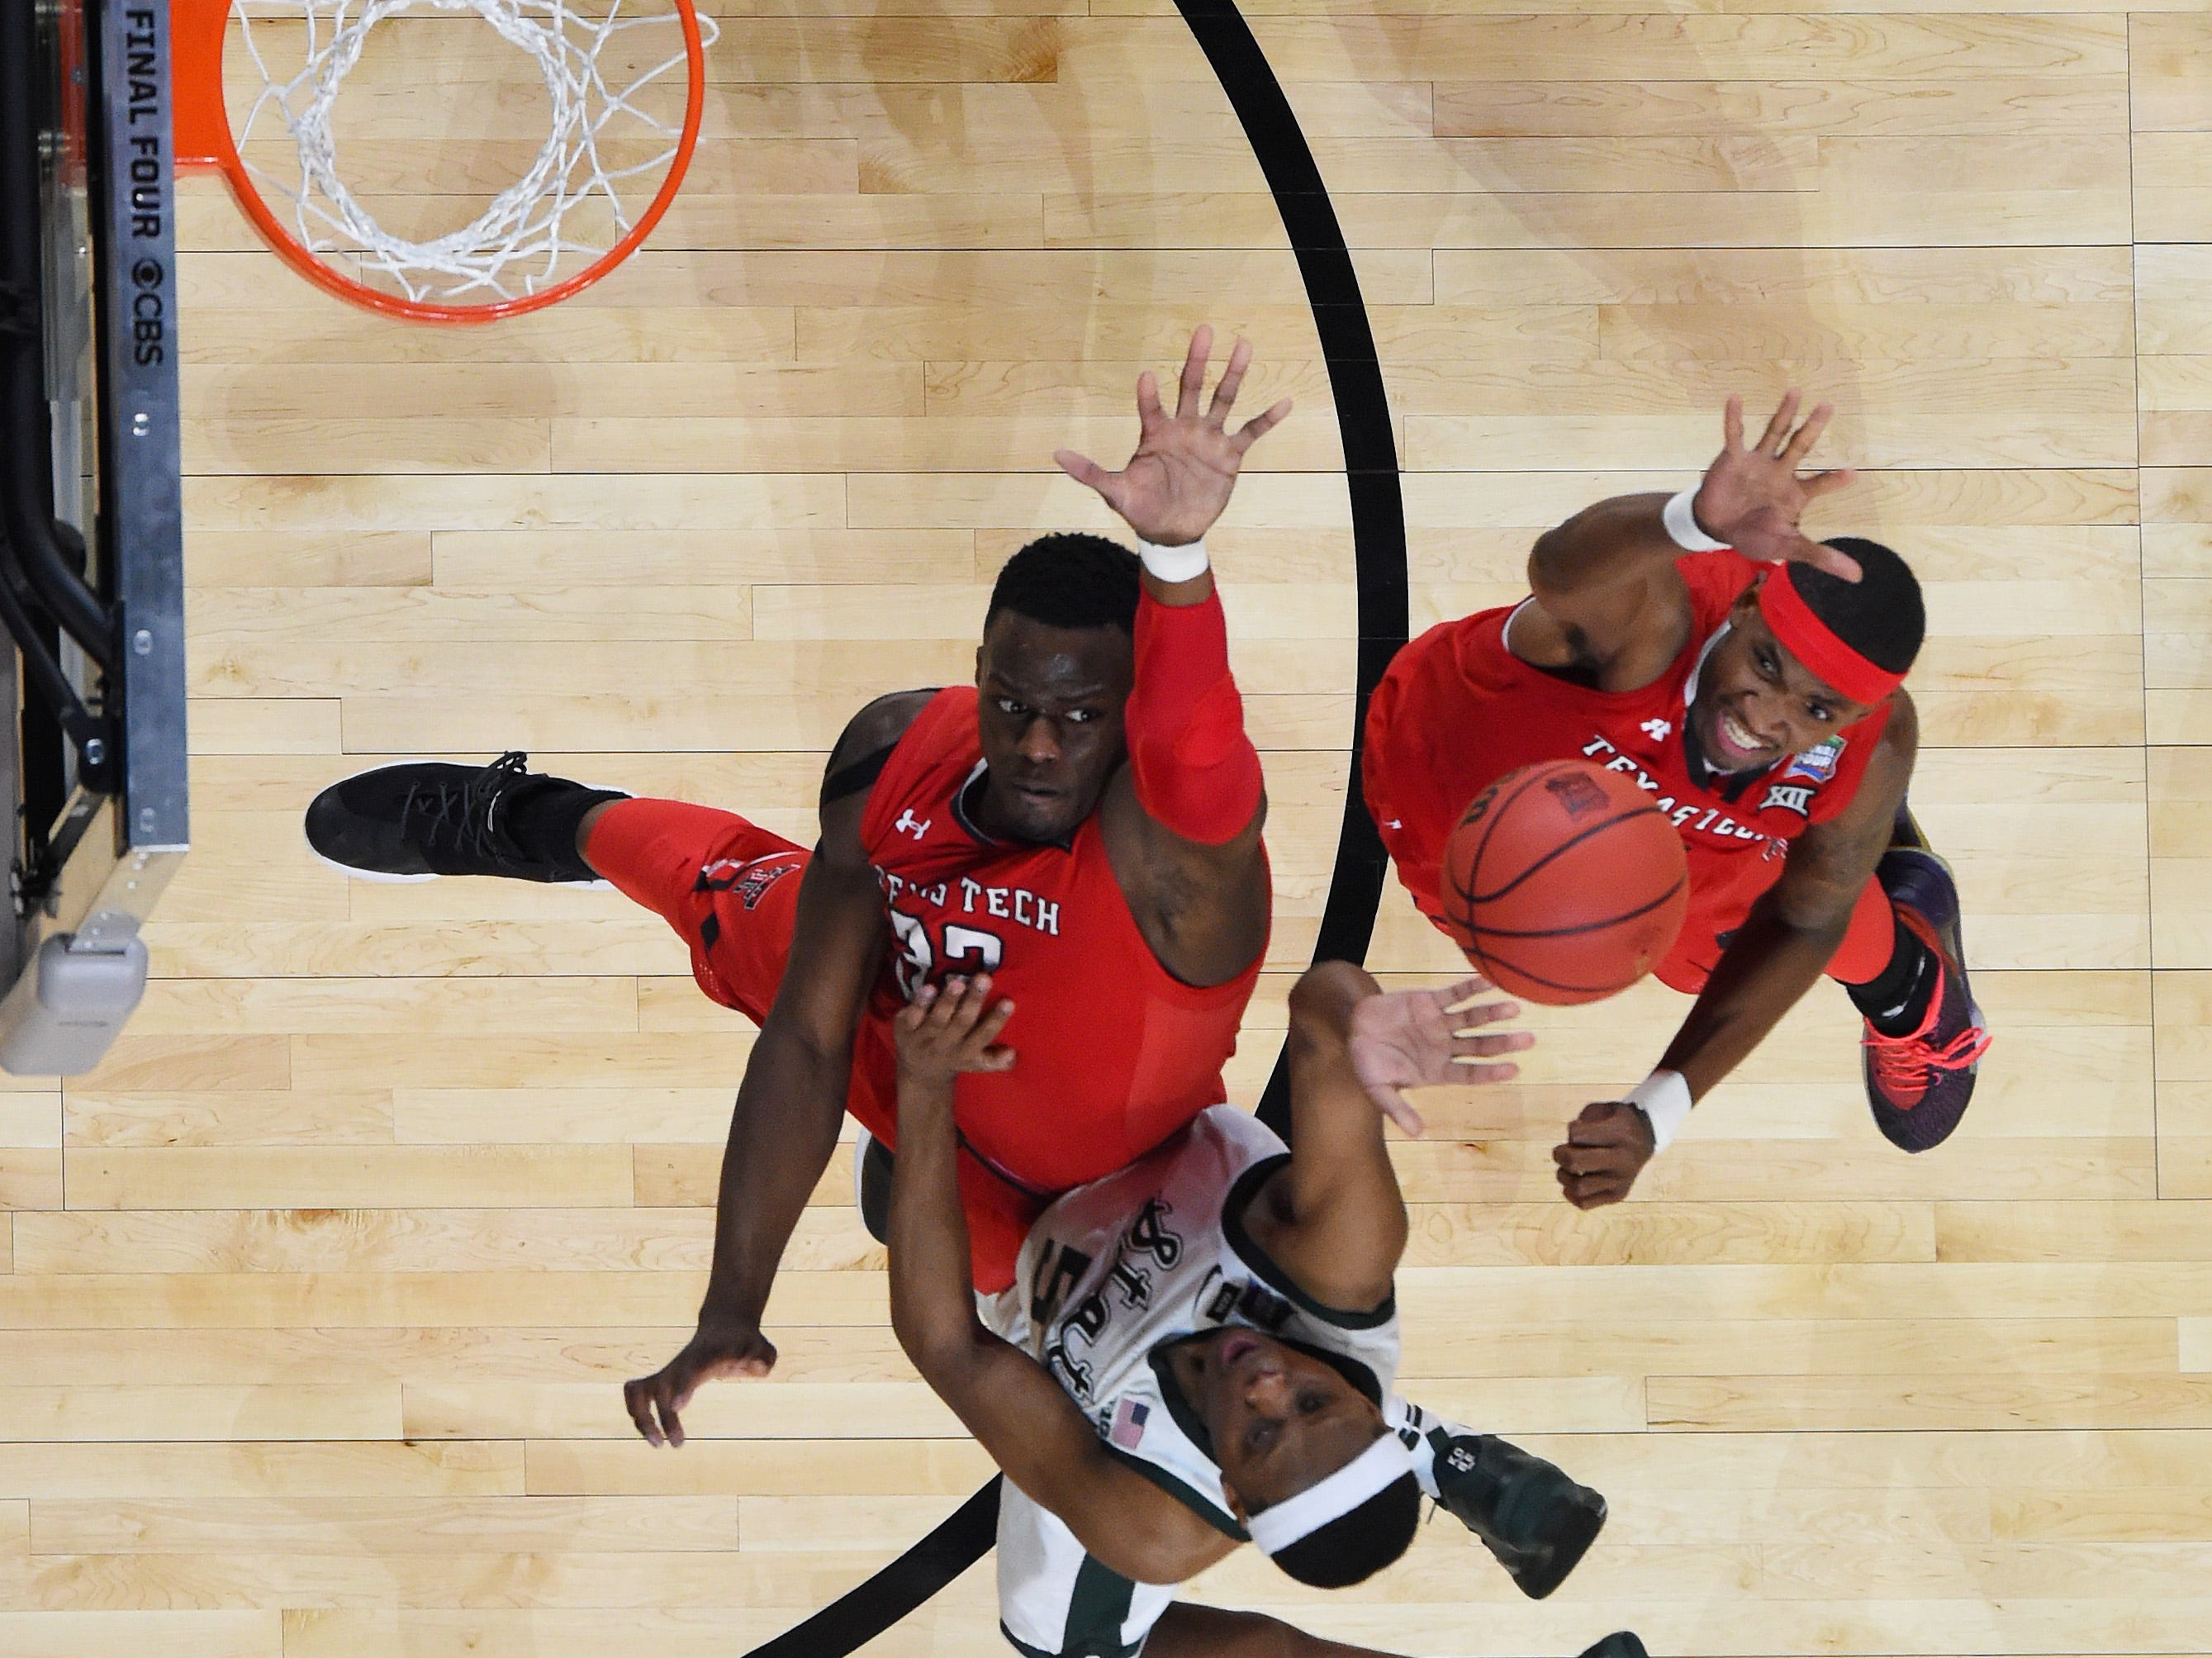 Michigan State Spartans guard Cassius Winston (5) goes up or a layup as Texas Tech Red Raiders center Norense Odiase (left) and forward Tariq Owens (right) defend.